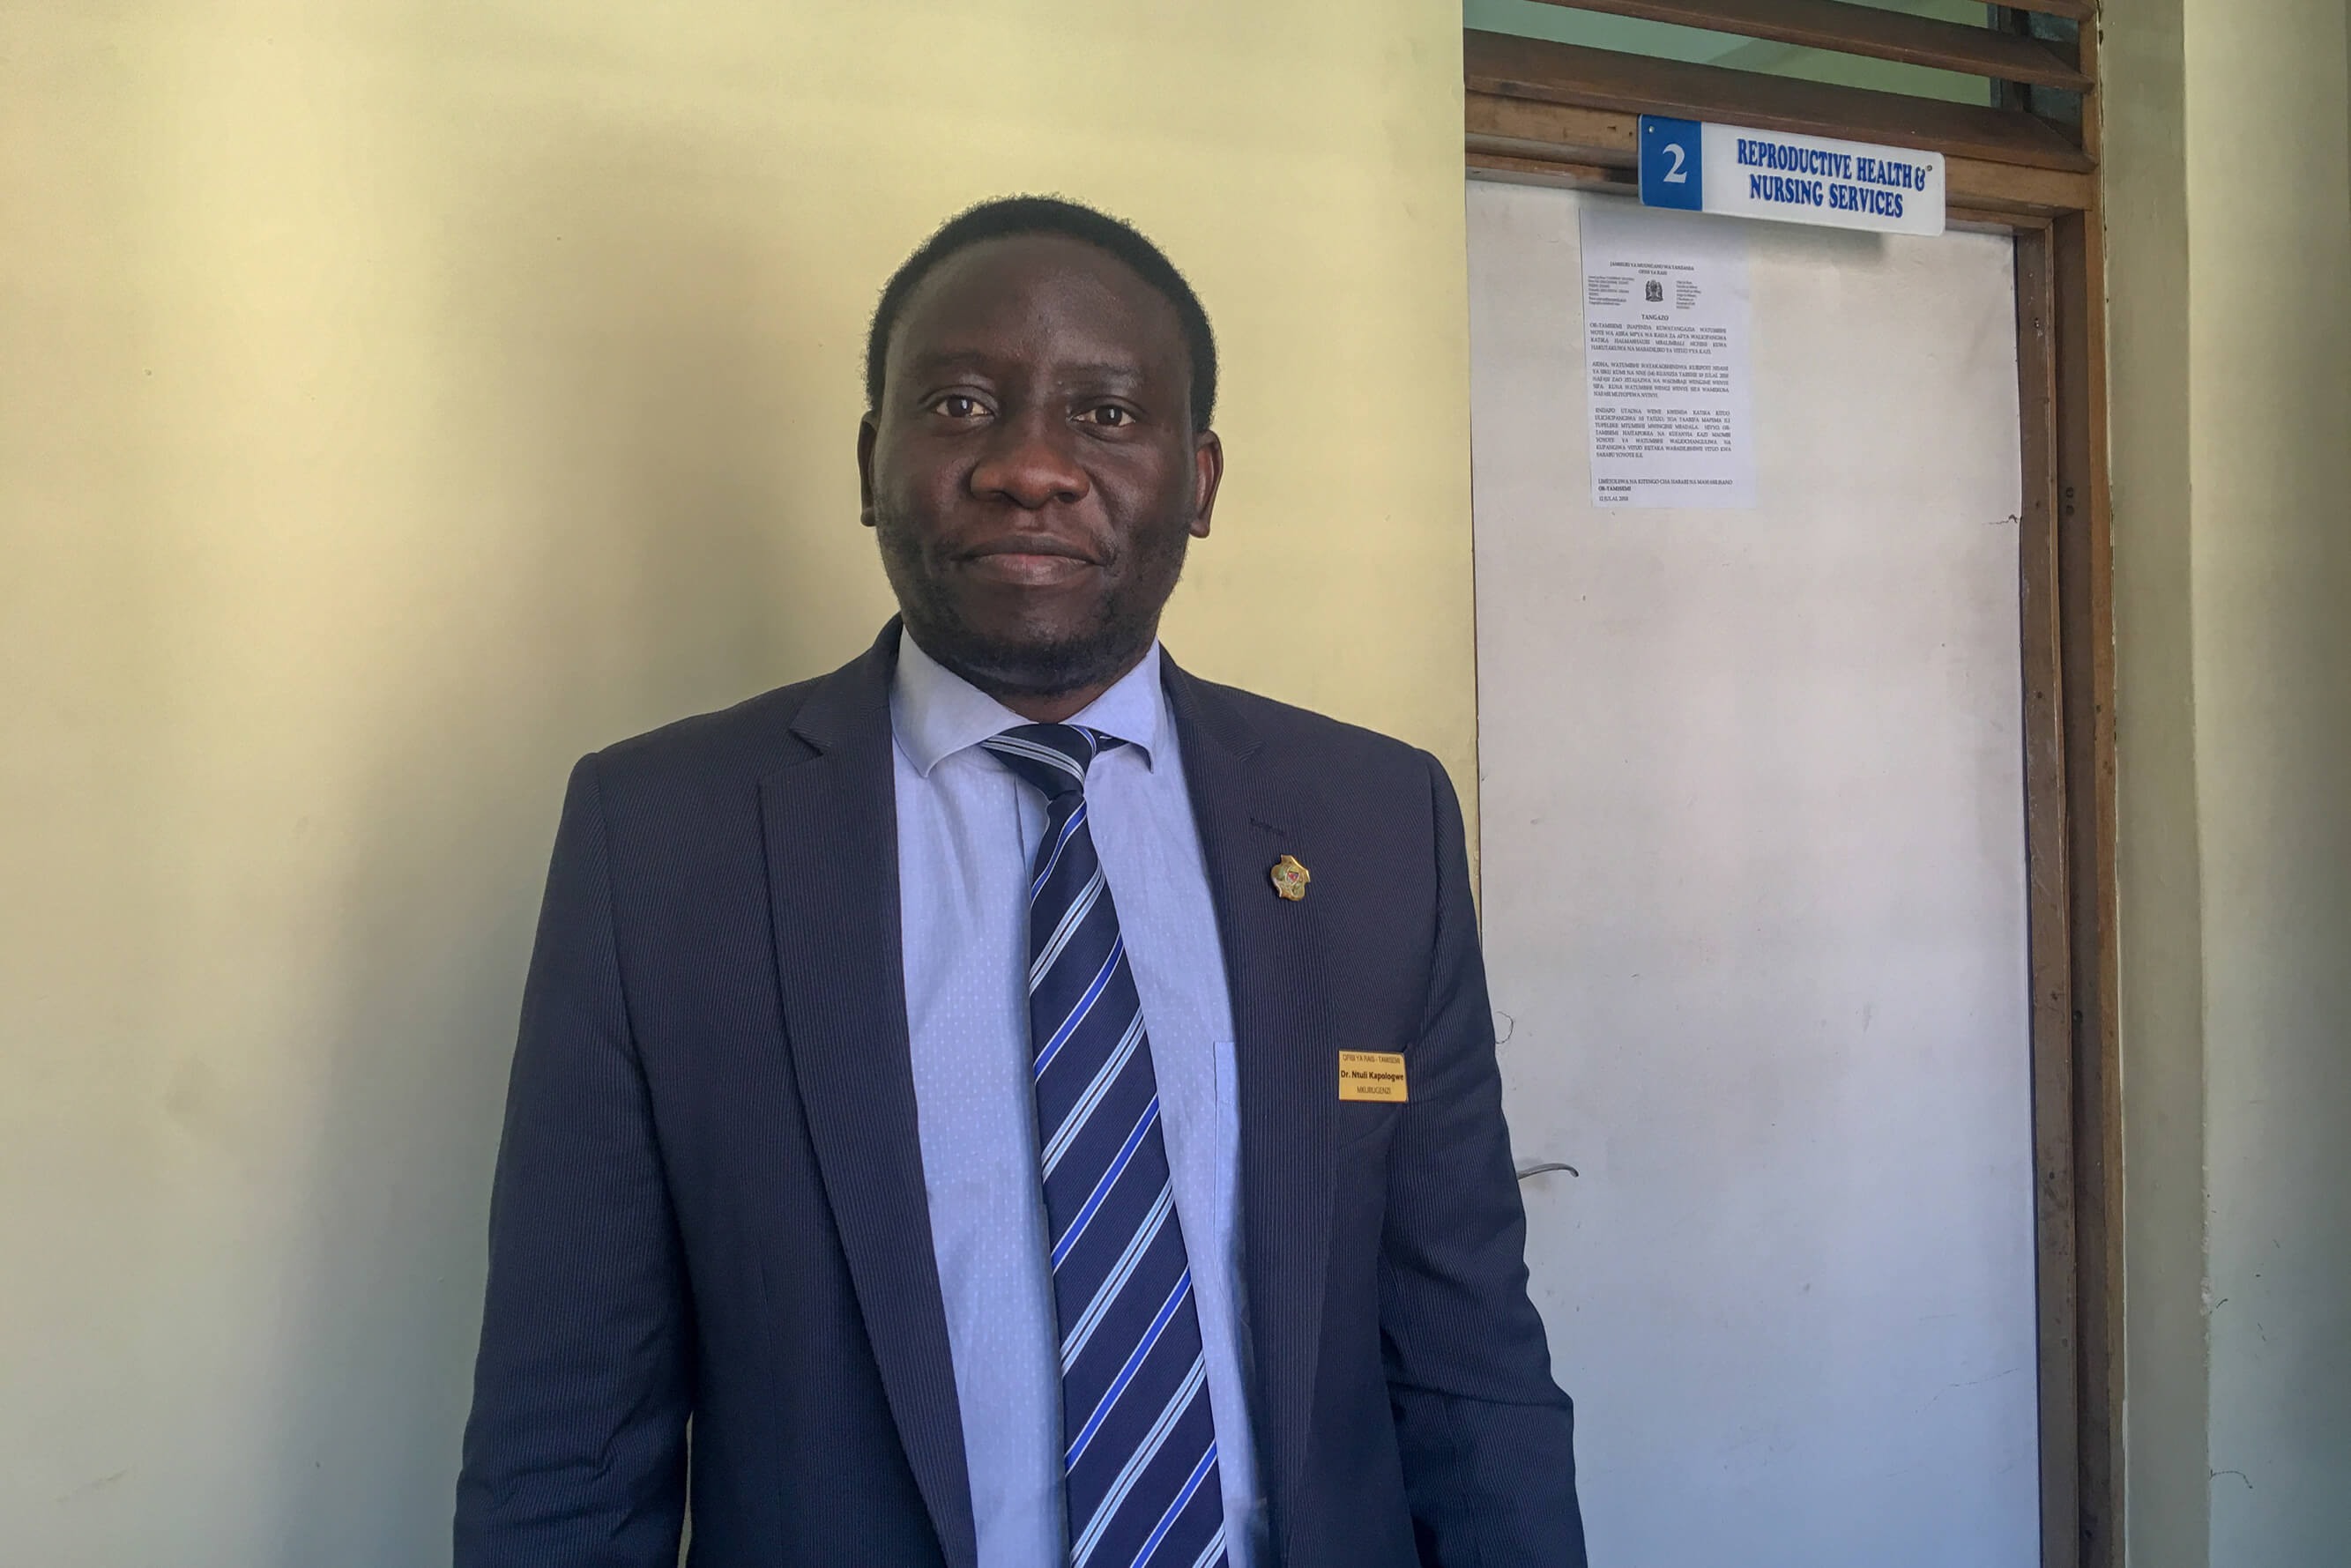 Dr. Ntuli Kapoglowe, program director of health, social welfare and nutrition services for the President's Office – Regional Administration and Local Government (PO-RALG)